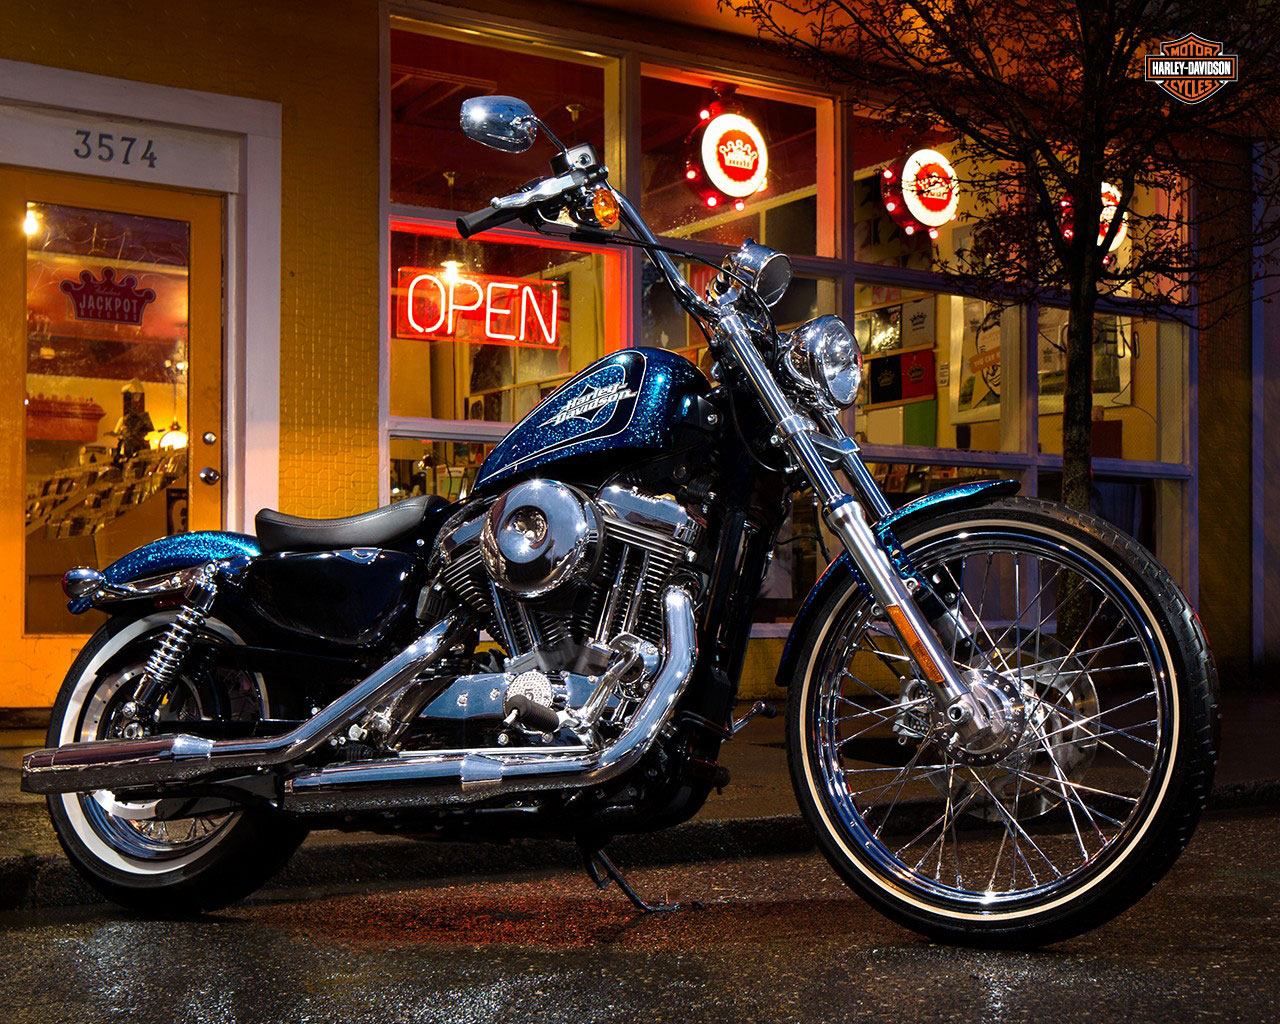 2015 harley davidson motorcycle model review page click photos to